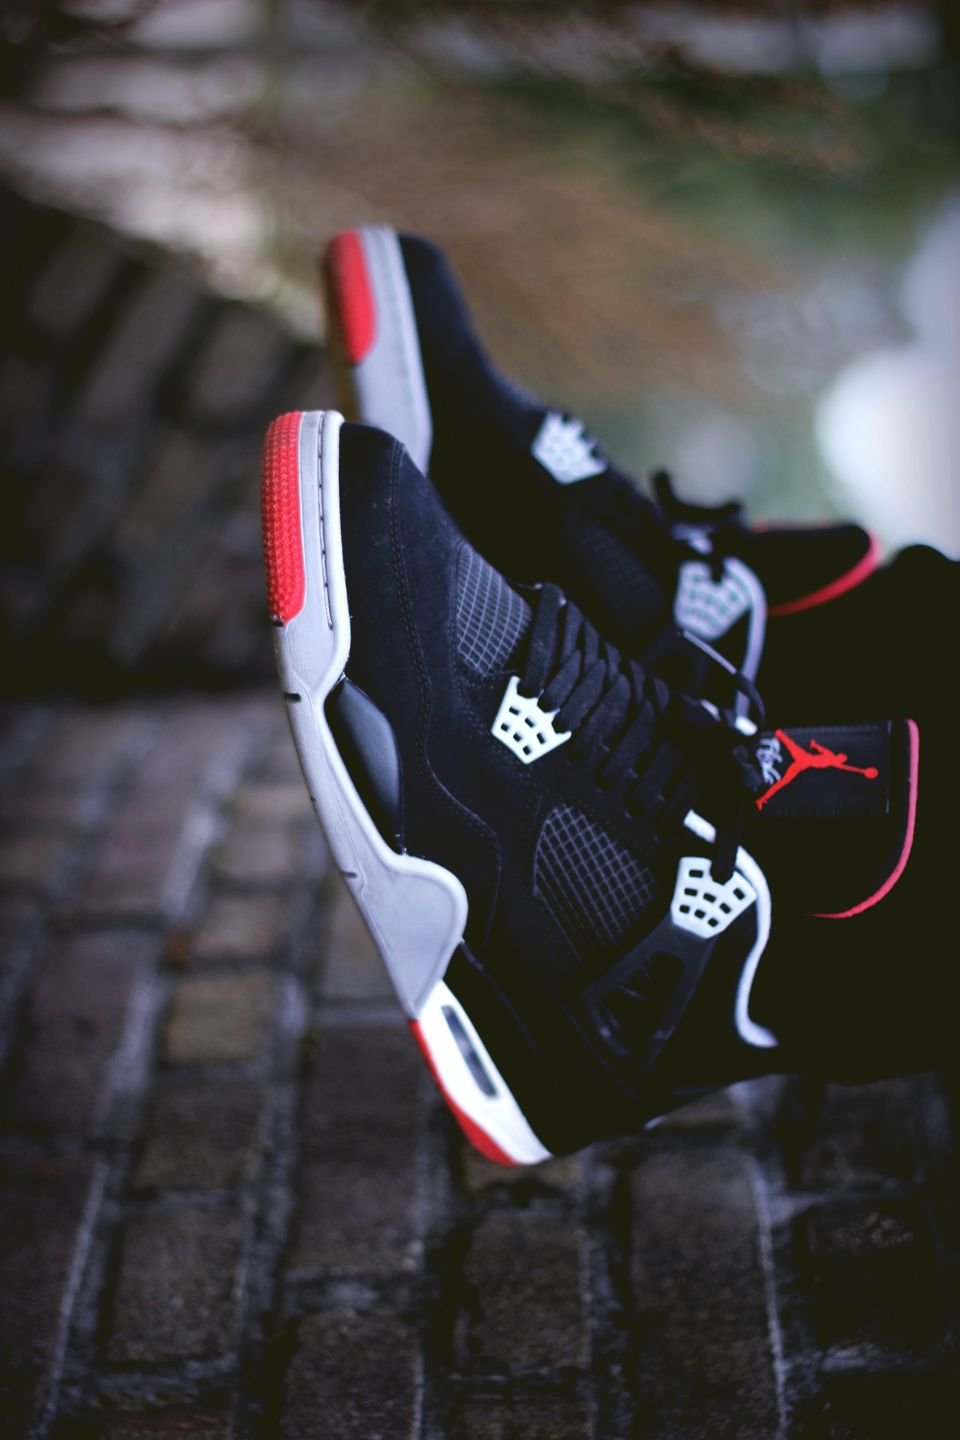 competitive price ffd1e b7517 Nike Air Jordan 4 Bred